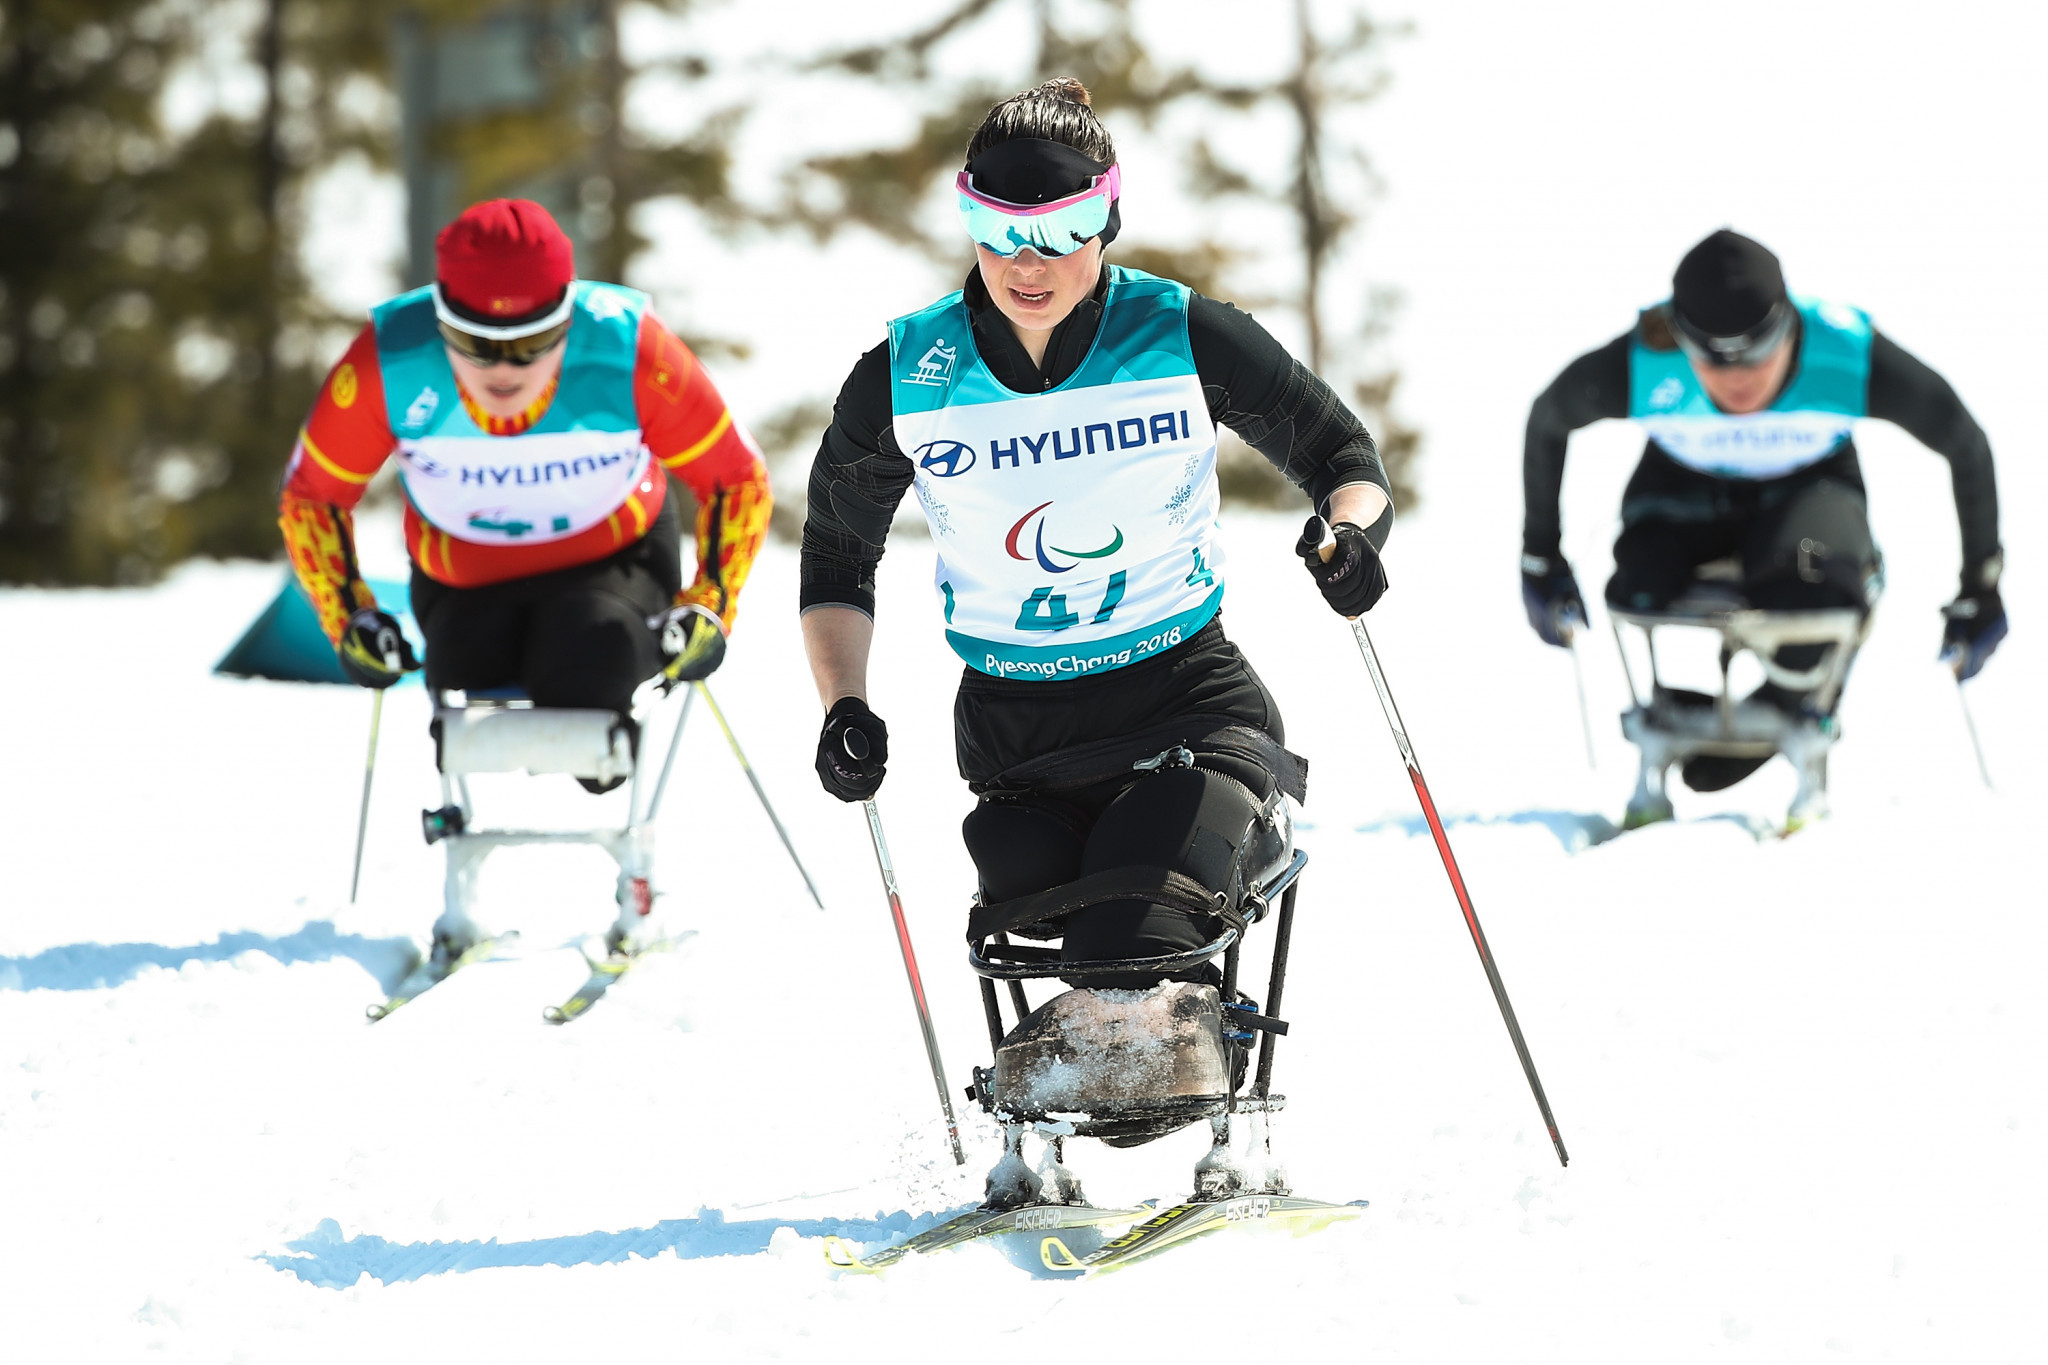 Russian athletes had to compete under a neutral flag at this year's Winter Paralympic Games in Pyeongchang ©Getty Images